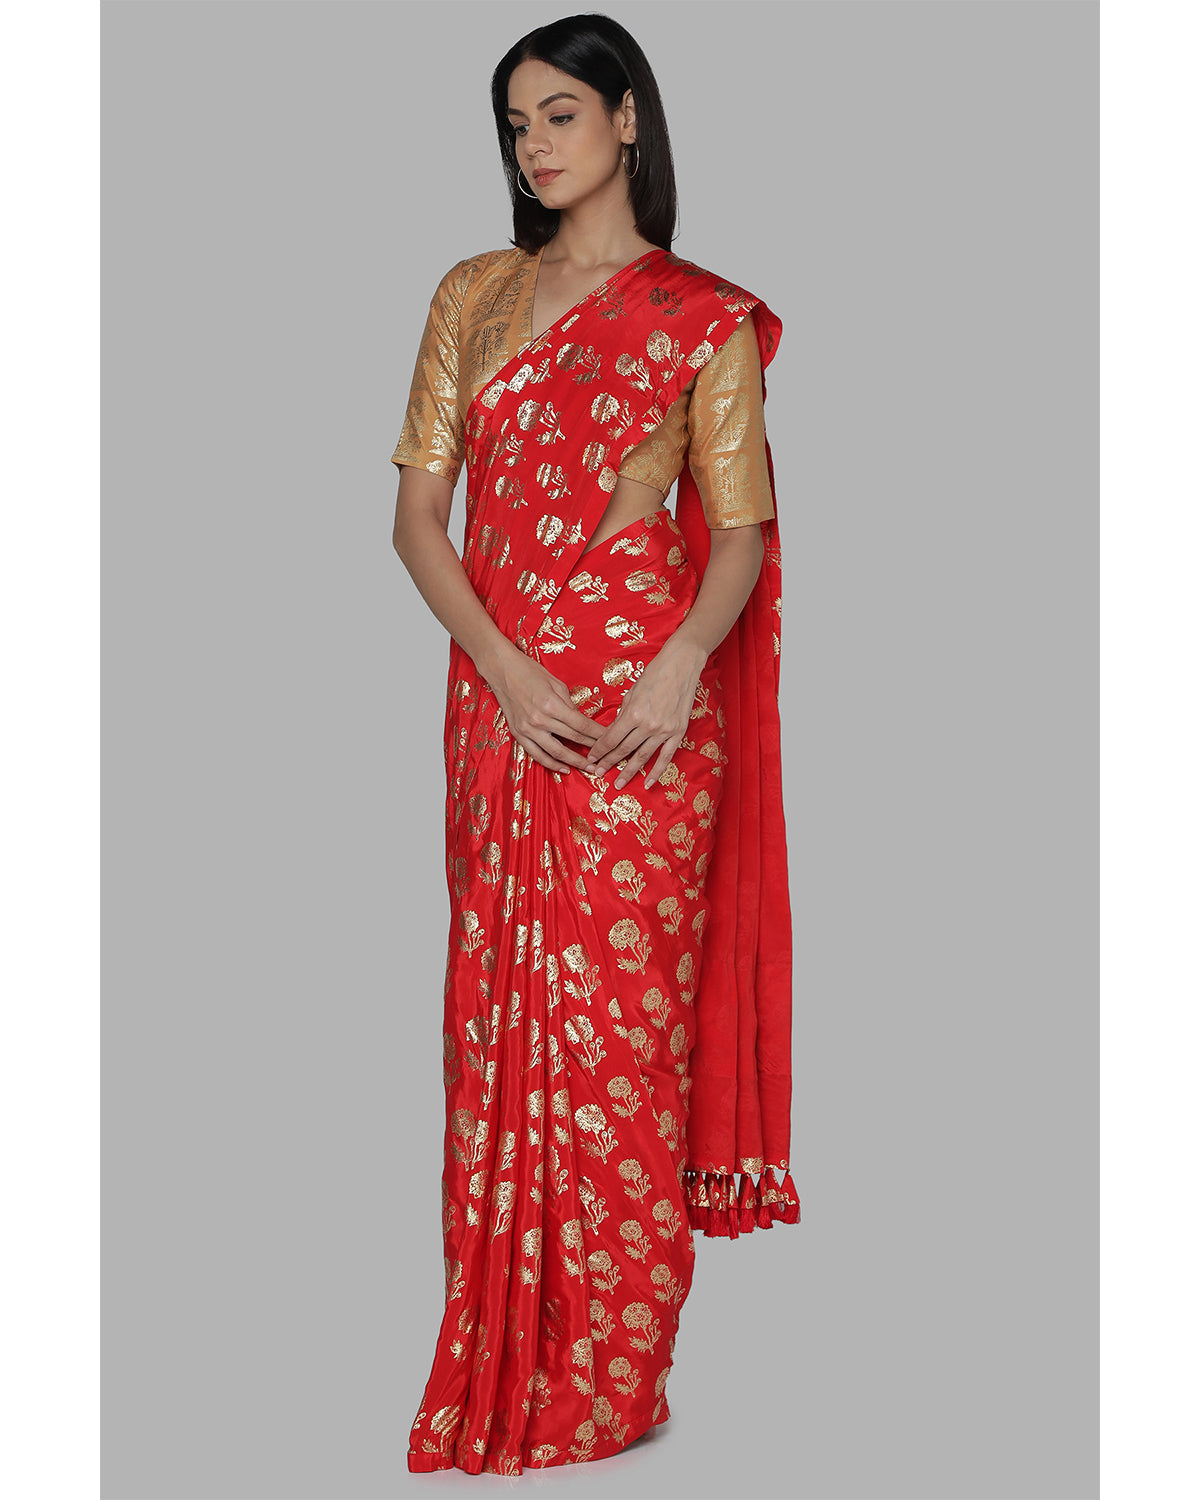 Red Printed Crepe Sari